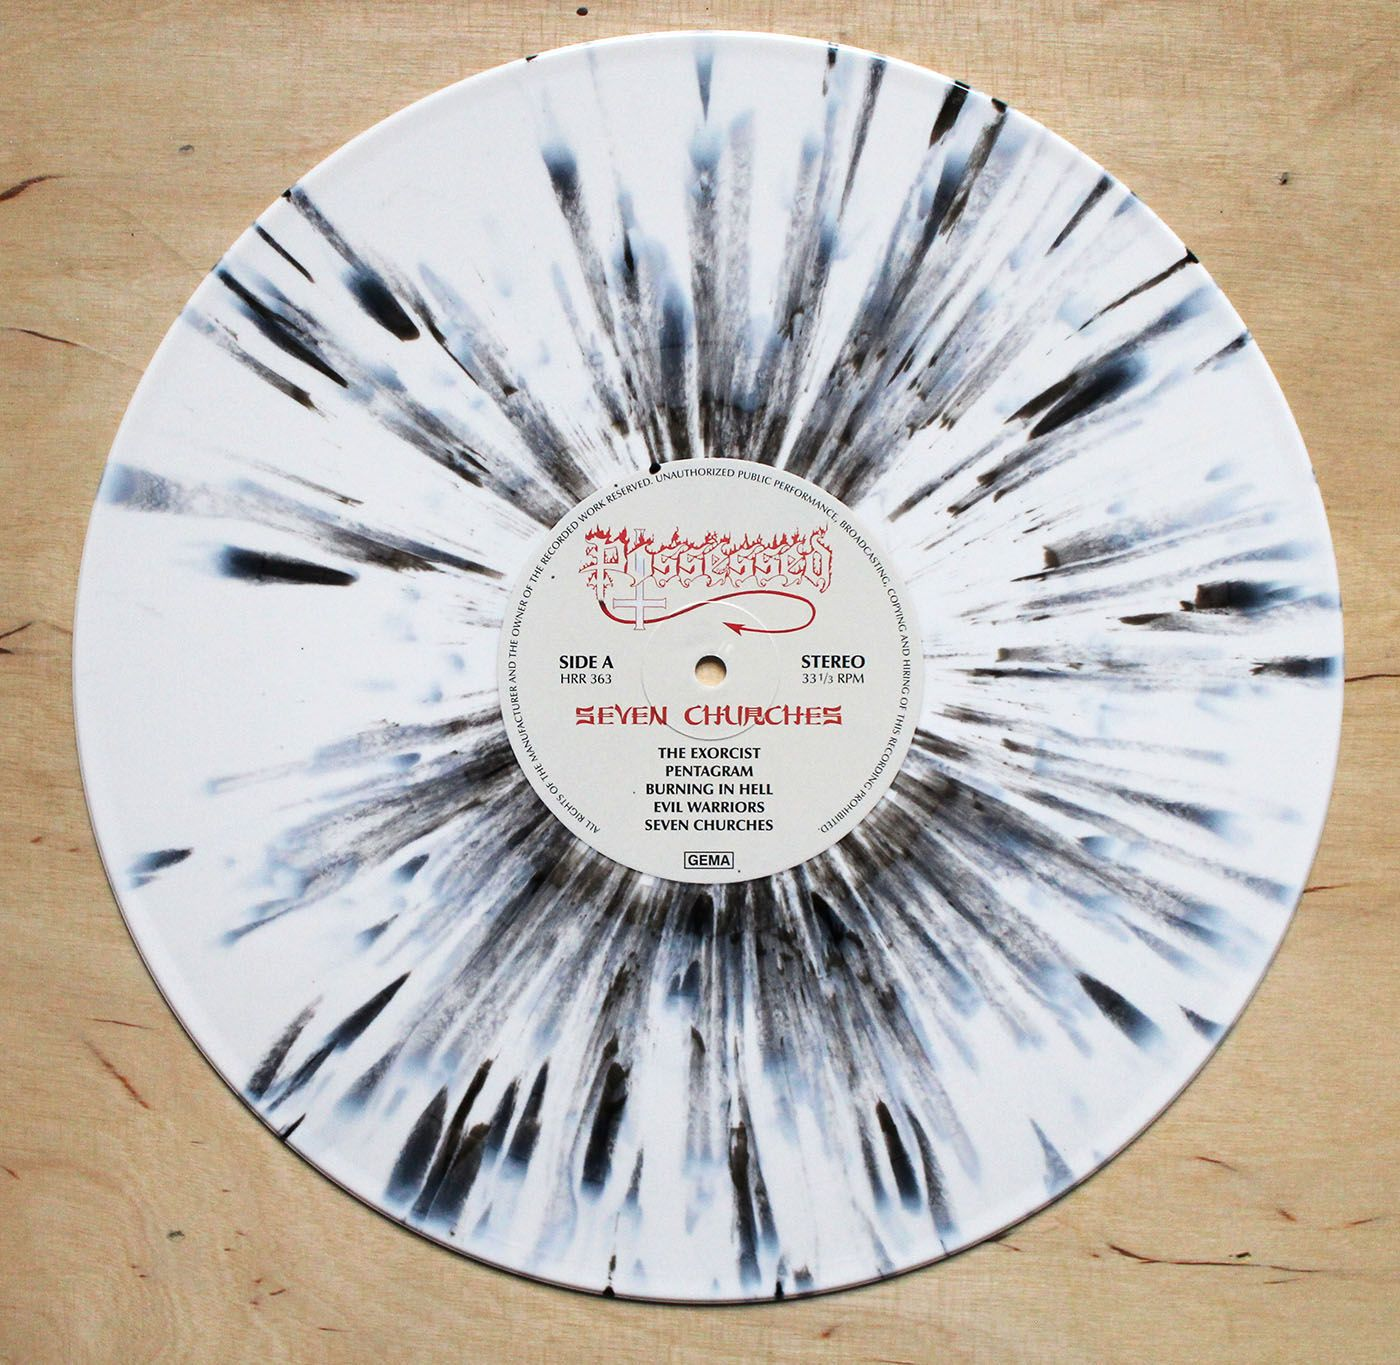 Possessed Seven Churches White Black Splatter Vinyl 12 Inch Vinyl Artwork Vinyl Vinyl Records